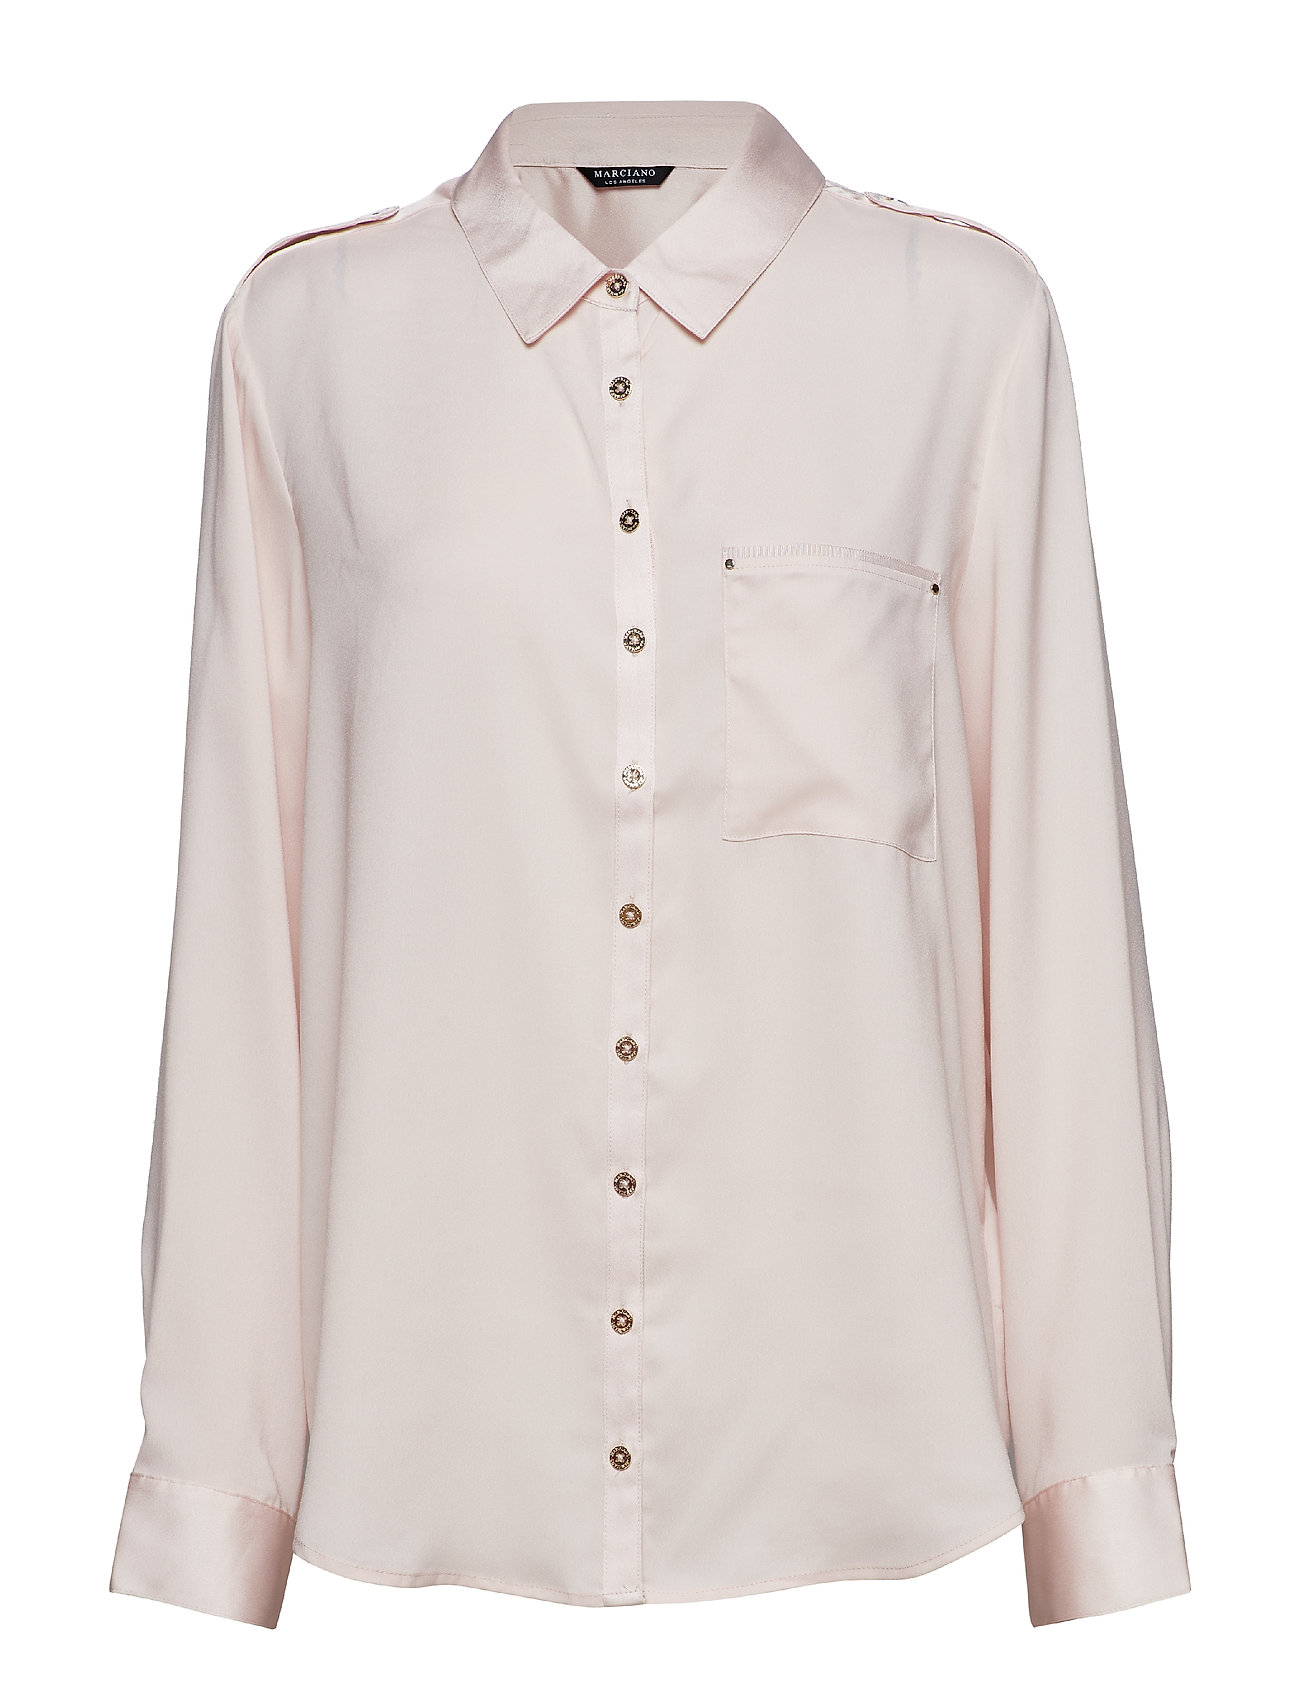 Marciano by GUESS PIPER SHIRT - PALE BLUSH